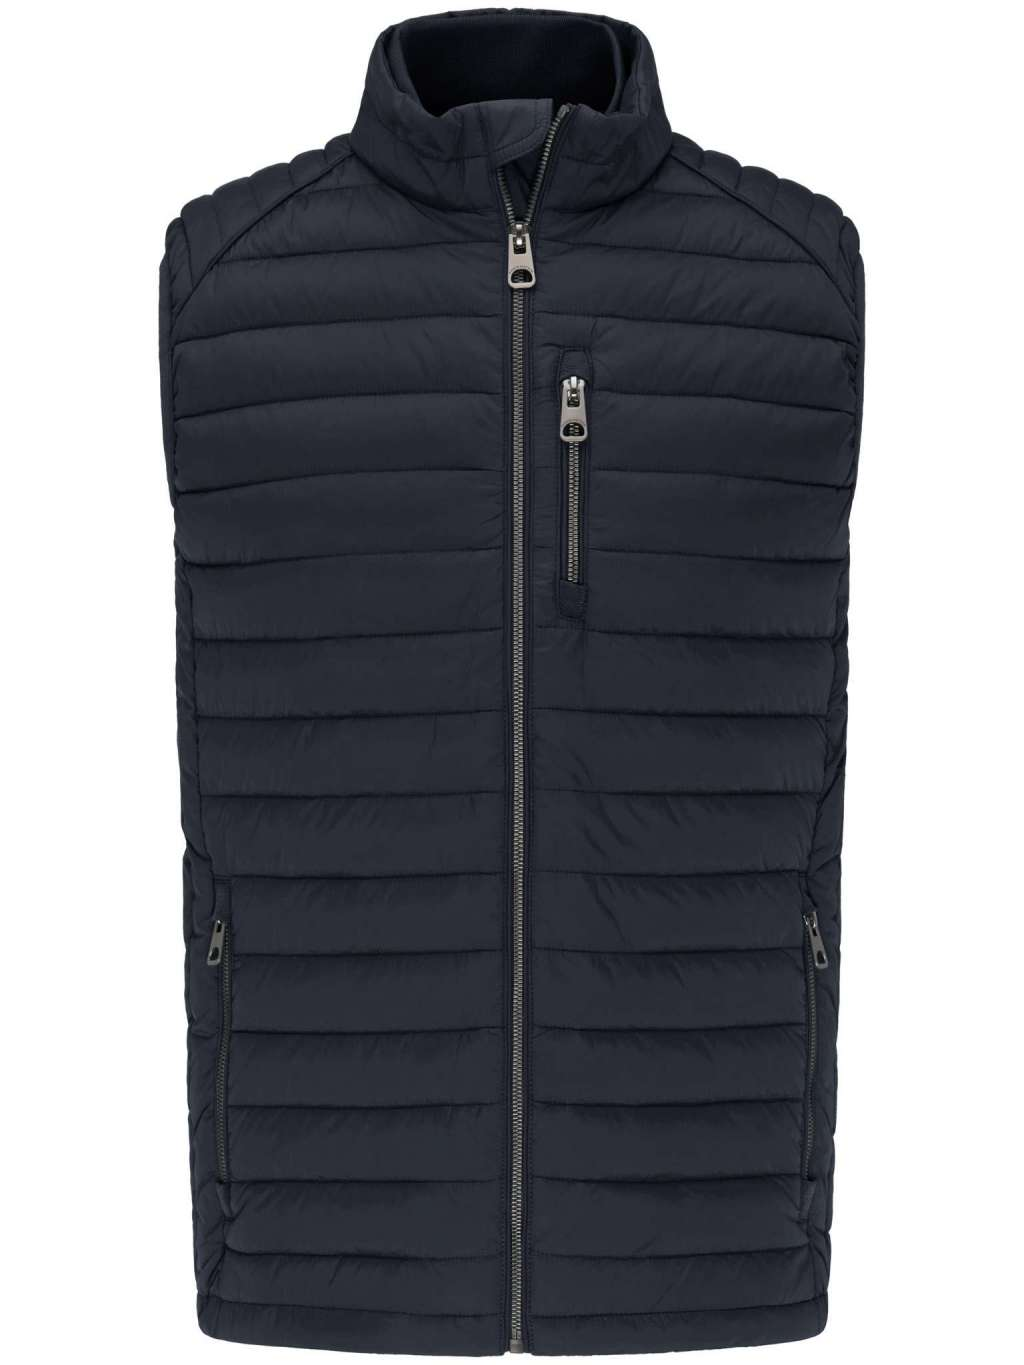 Fynch Hatton Jacket in regular classic fit. Downtouch Vest, Lightweight chosen in a Navy colour